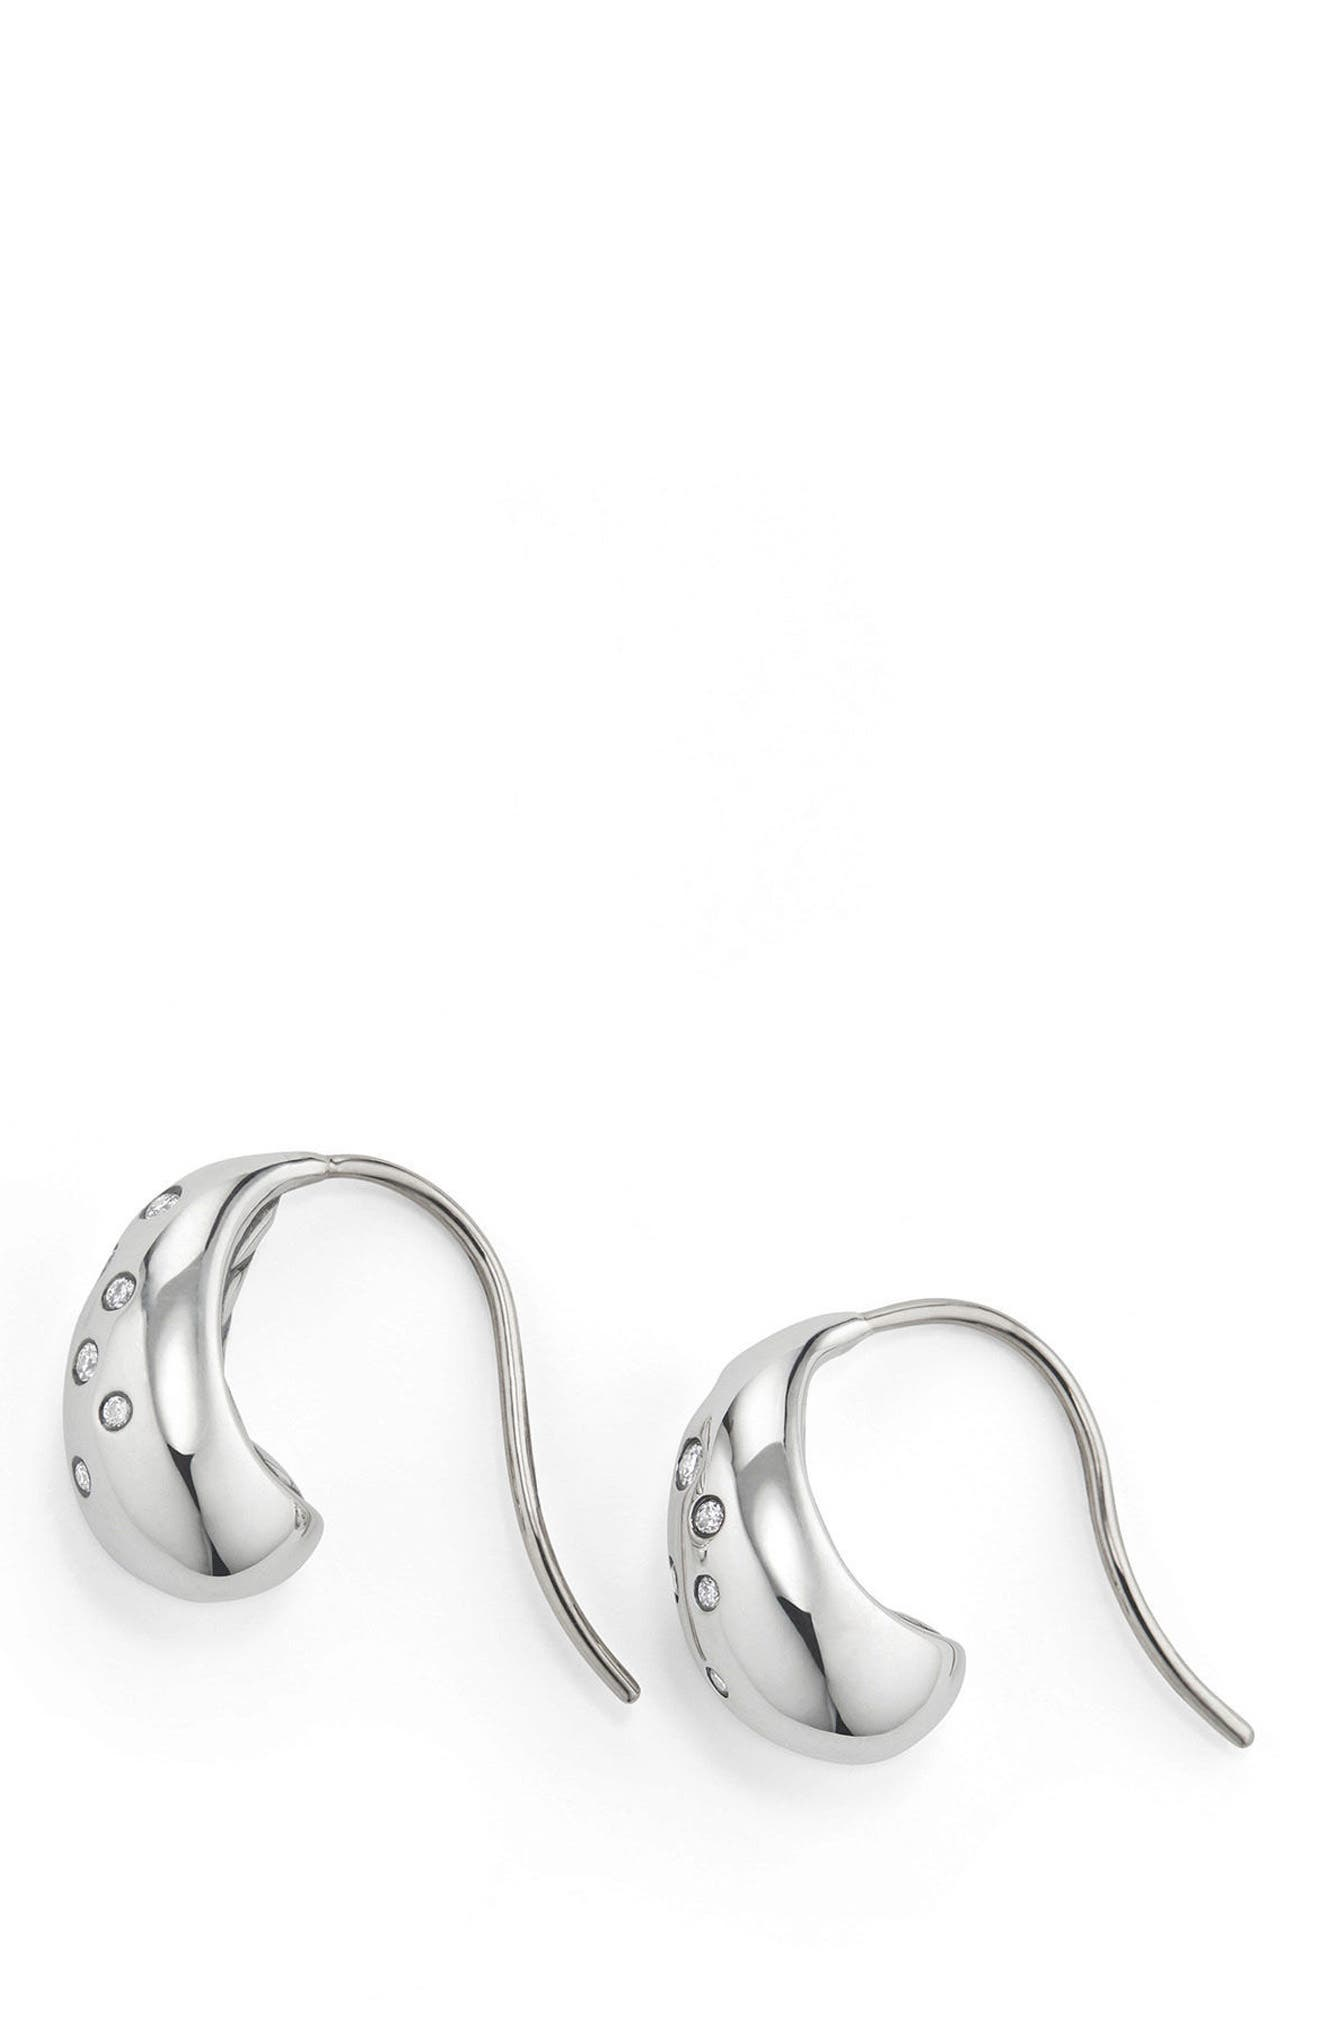 Pure Form Earrings with Diamonds, 15mm,                             Alternate thumbnail 2, color,                             SILVER